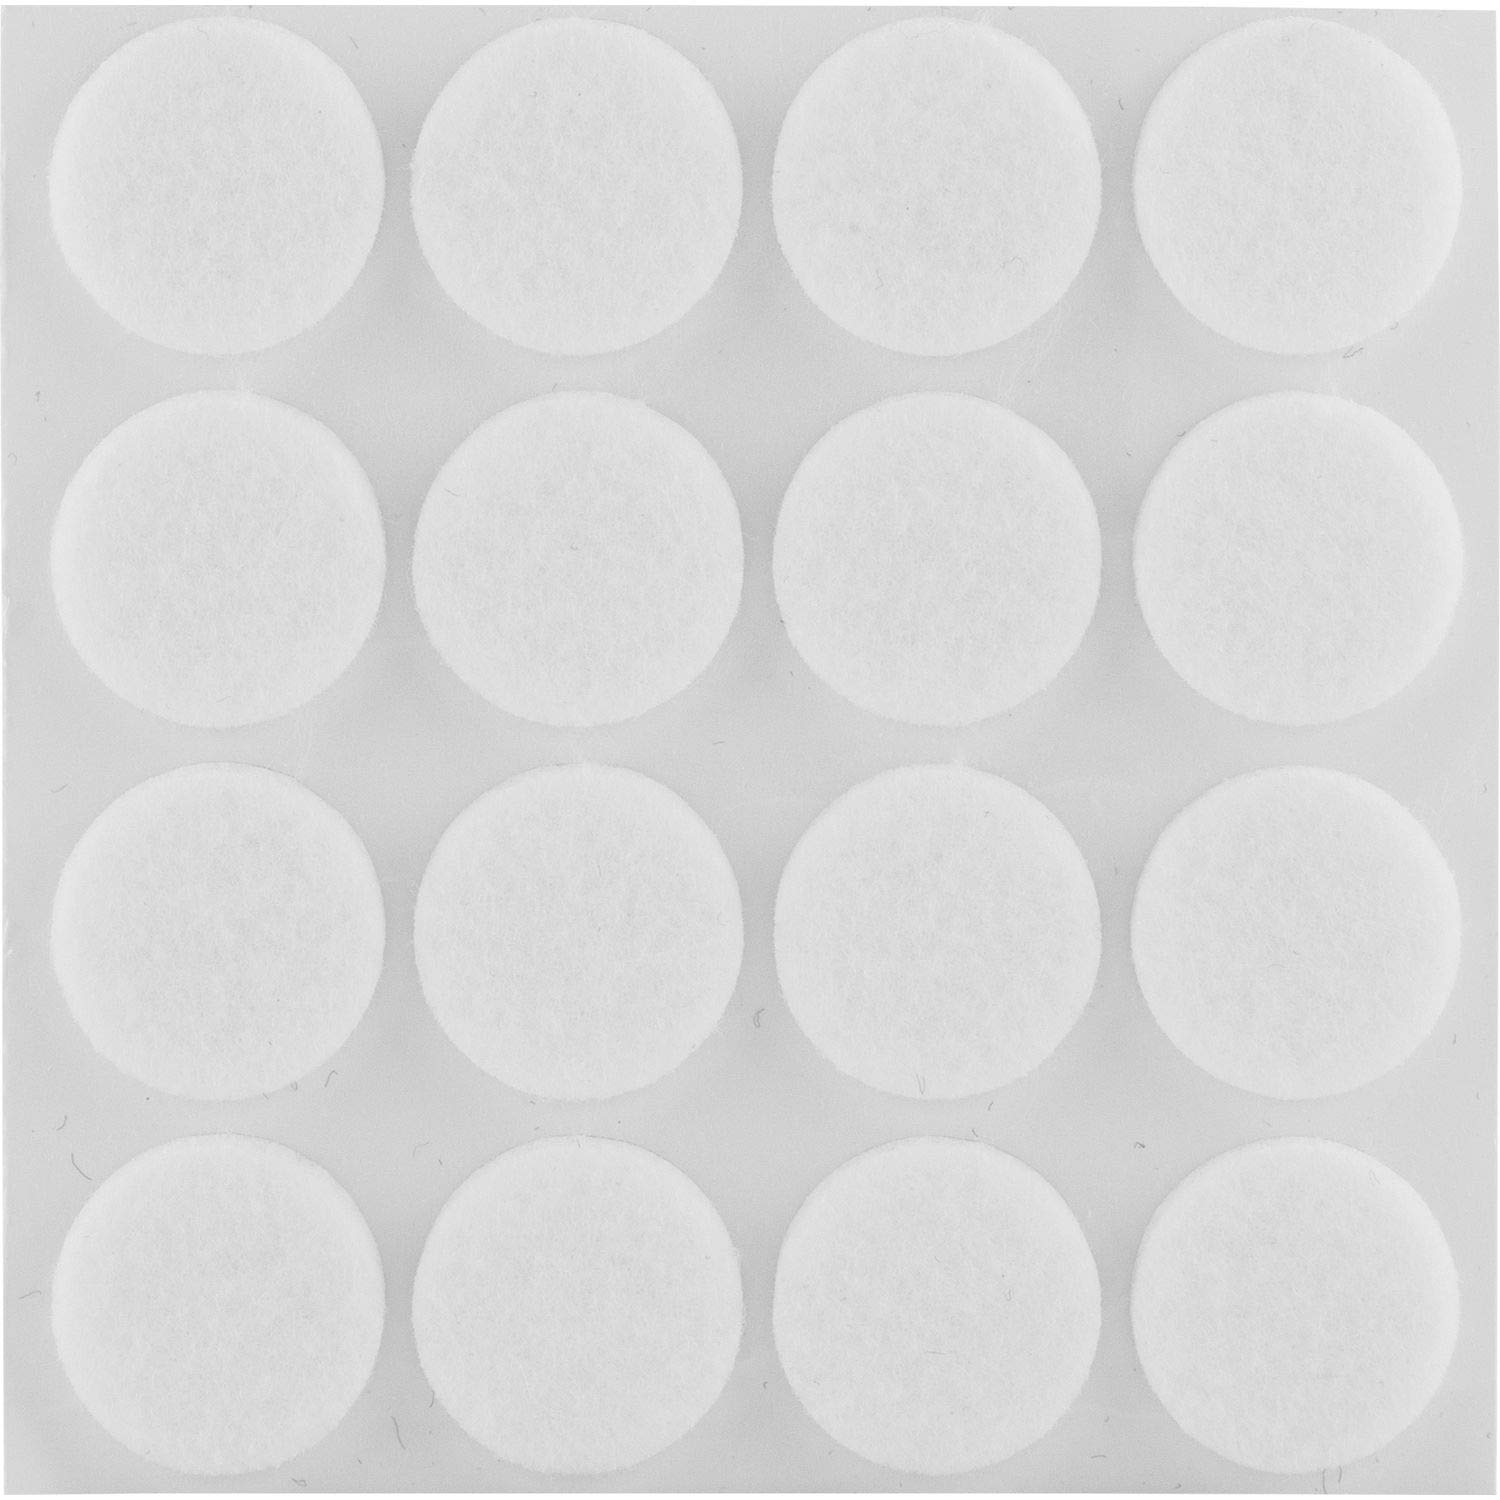 Secotec Felt Pads Self-Adhesive White Round 22 mm (Pack of 16)/V105 A031S807